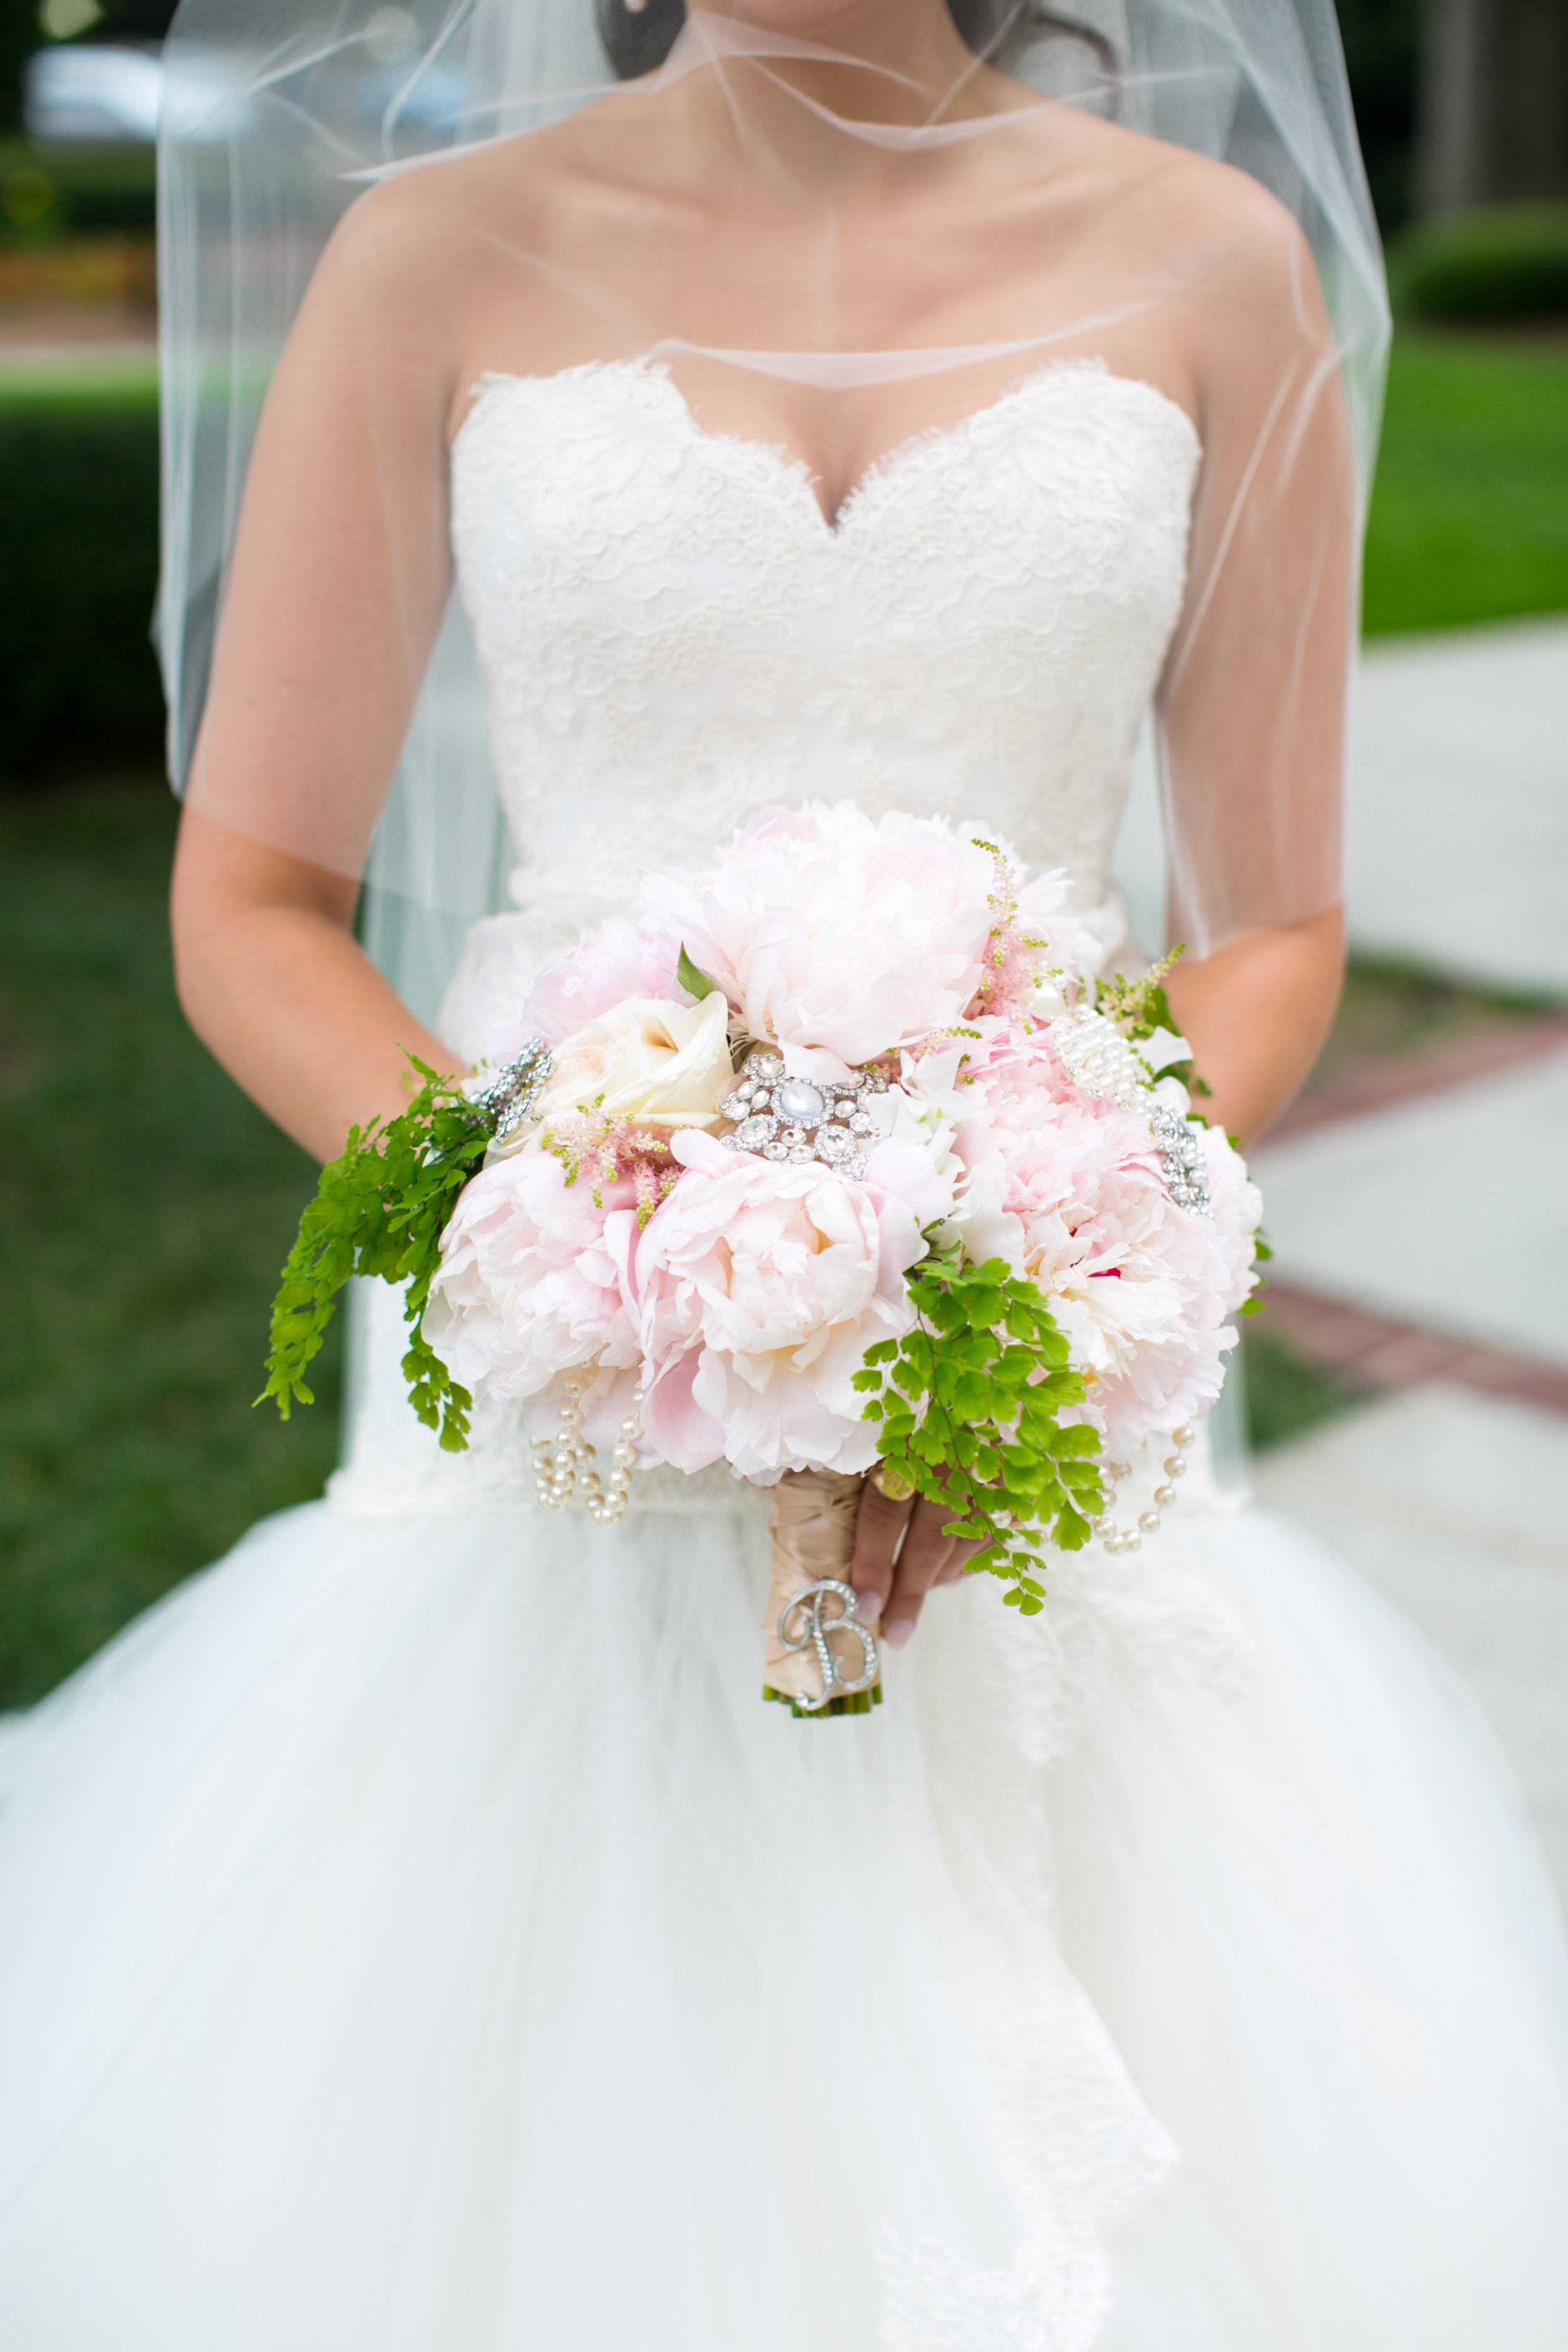 Liz's bouquet was all about the BLING! Rhinestone and pearl pins were mixed in with the peonies, making her bouquet one of the most stunning arrangements I've seen. And if you think her bouquet is beautiful, you have to see the arrangements at her  Biltmore ballrooms wedding here  and  here !